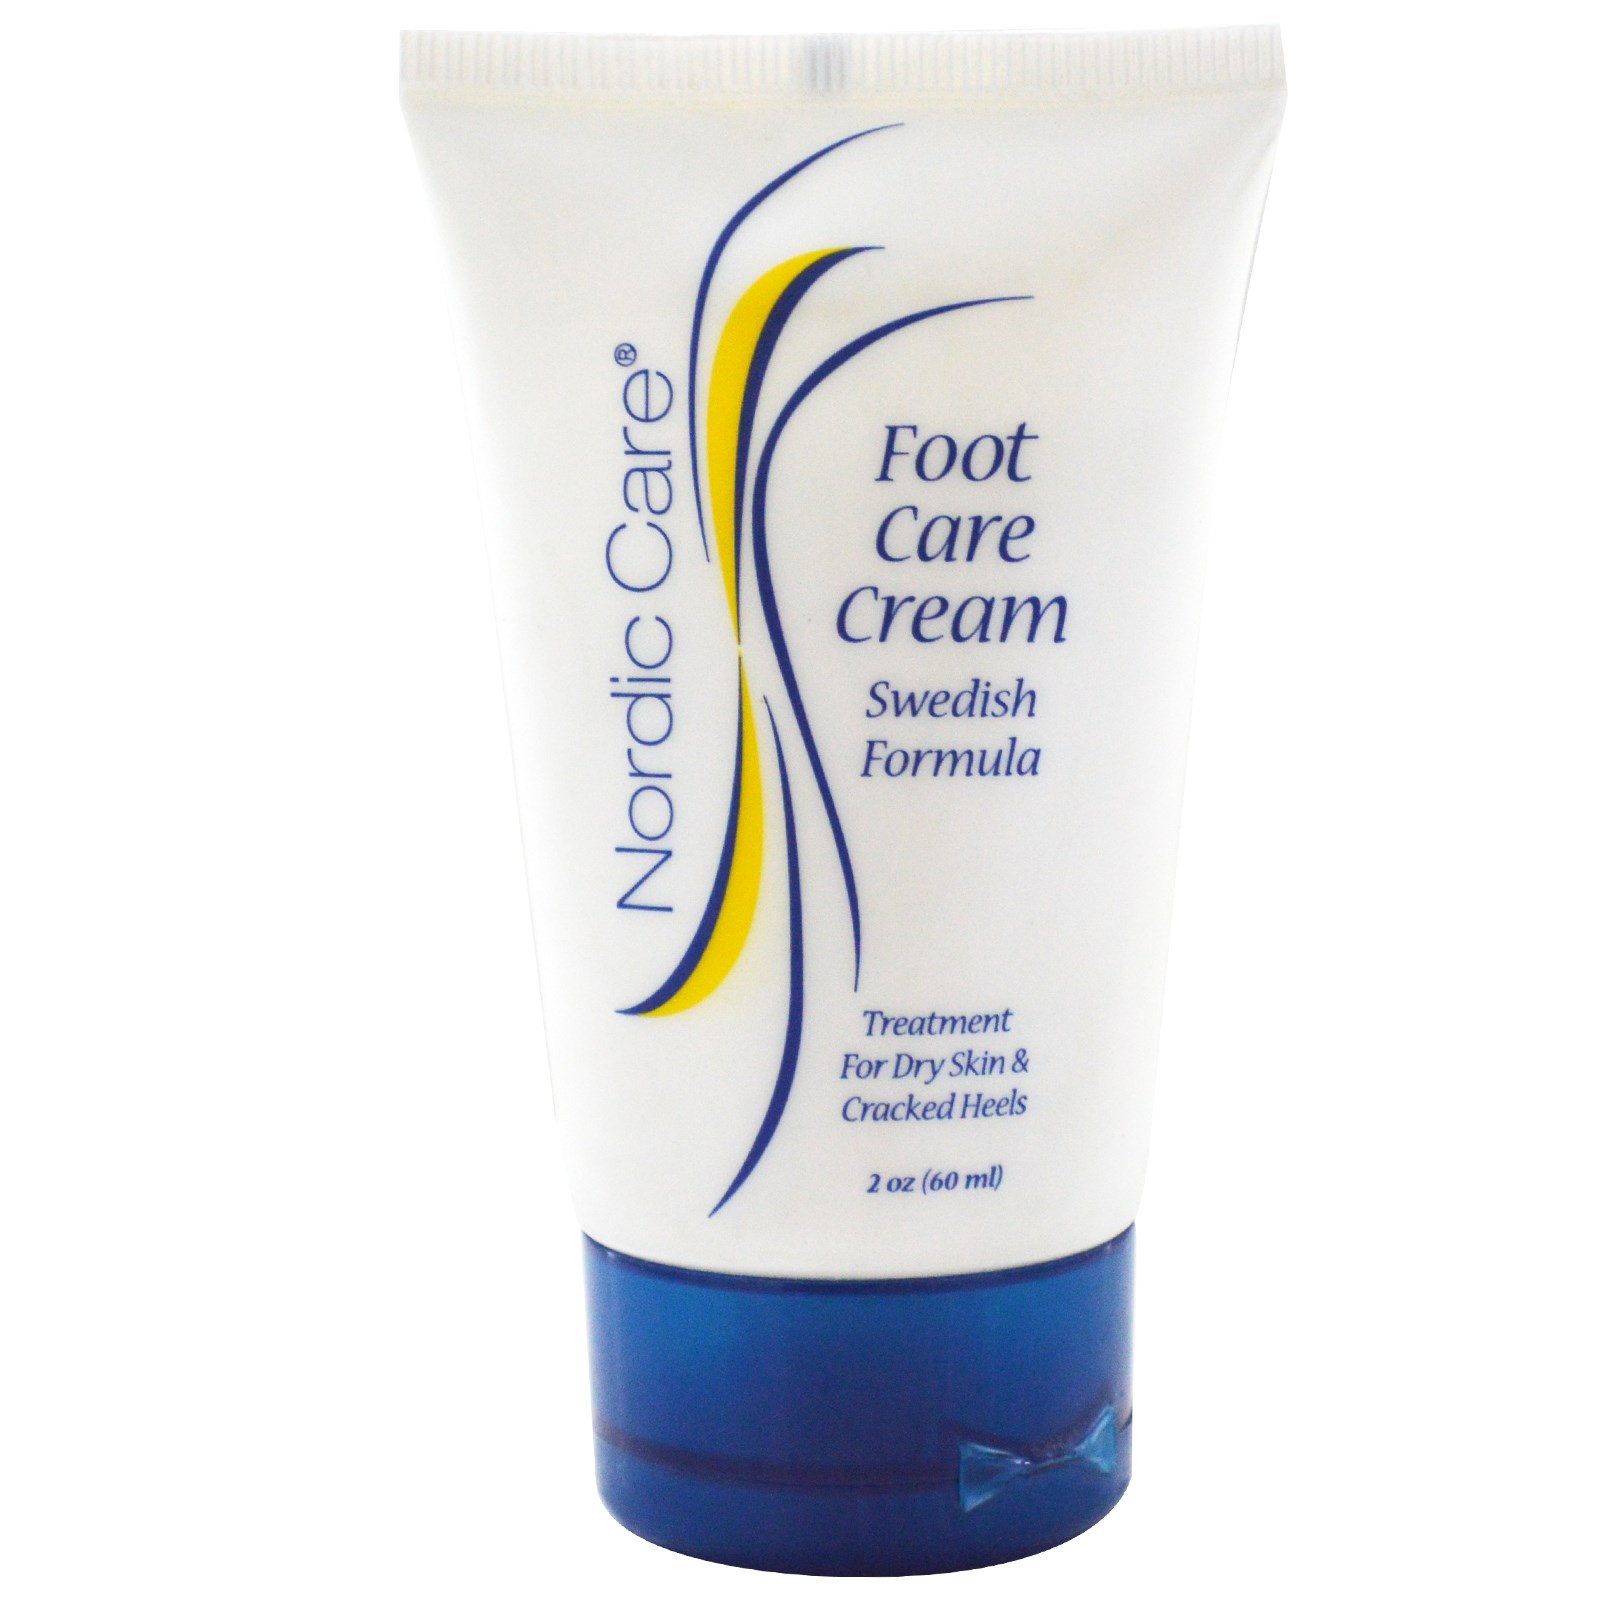 Nordic Care Foot Cream - 2 oz (get 0.5 oz FREE)